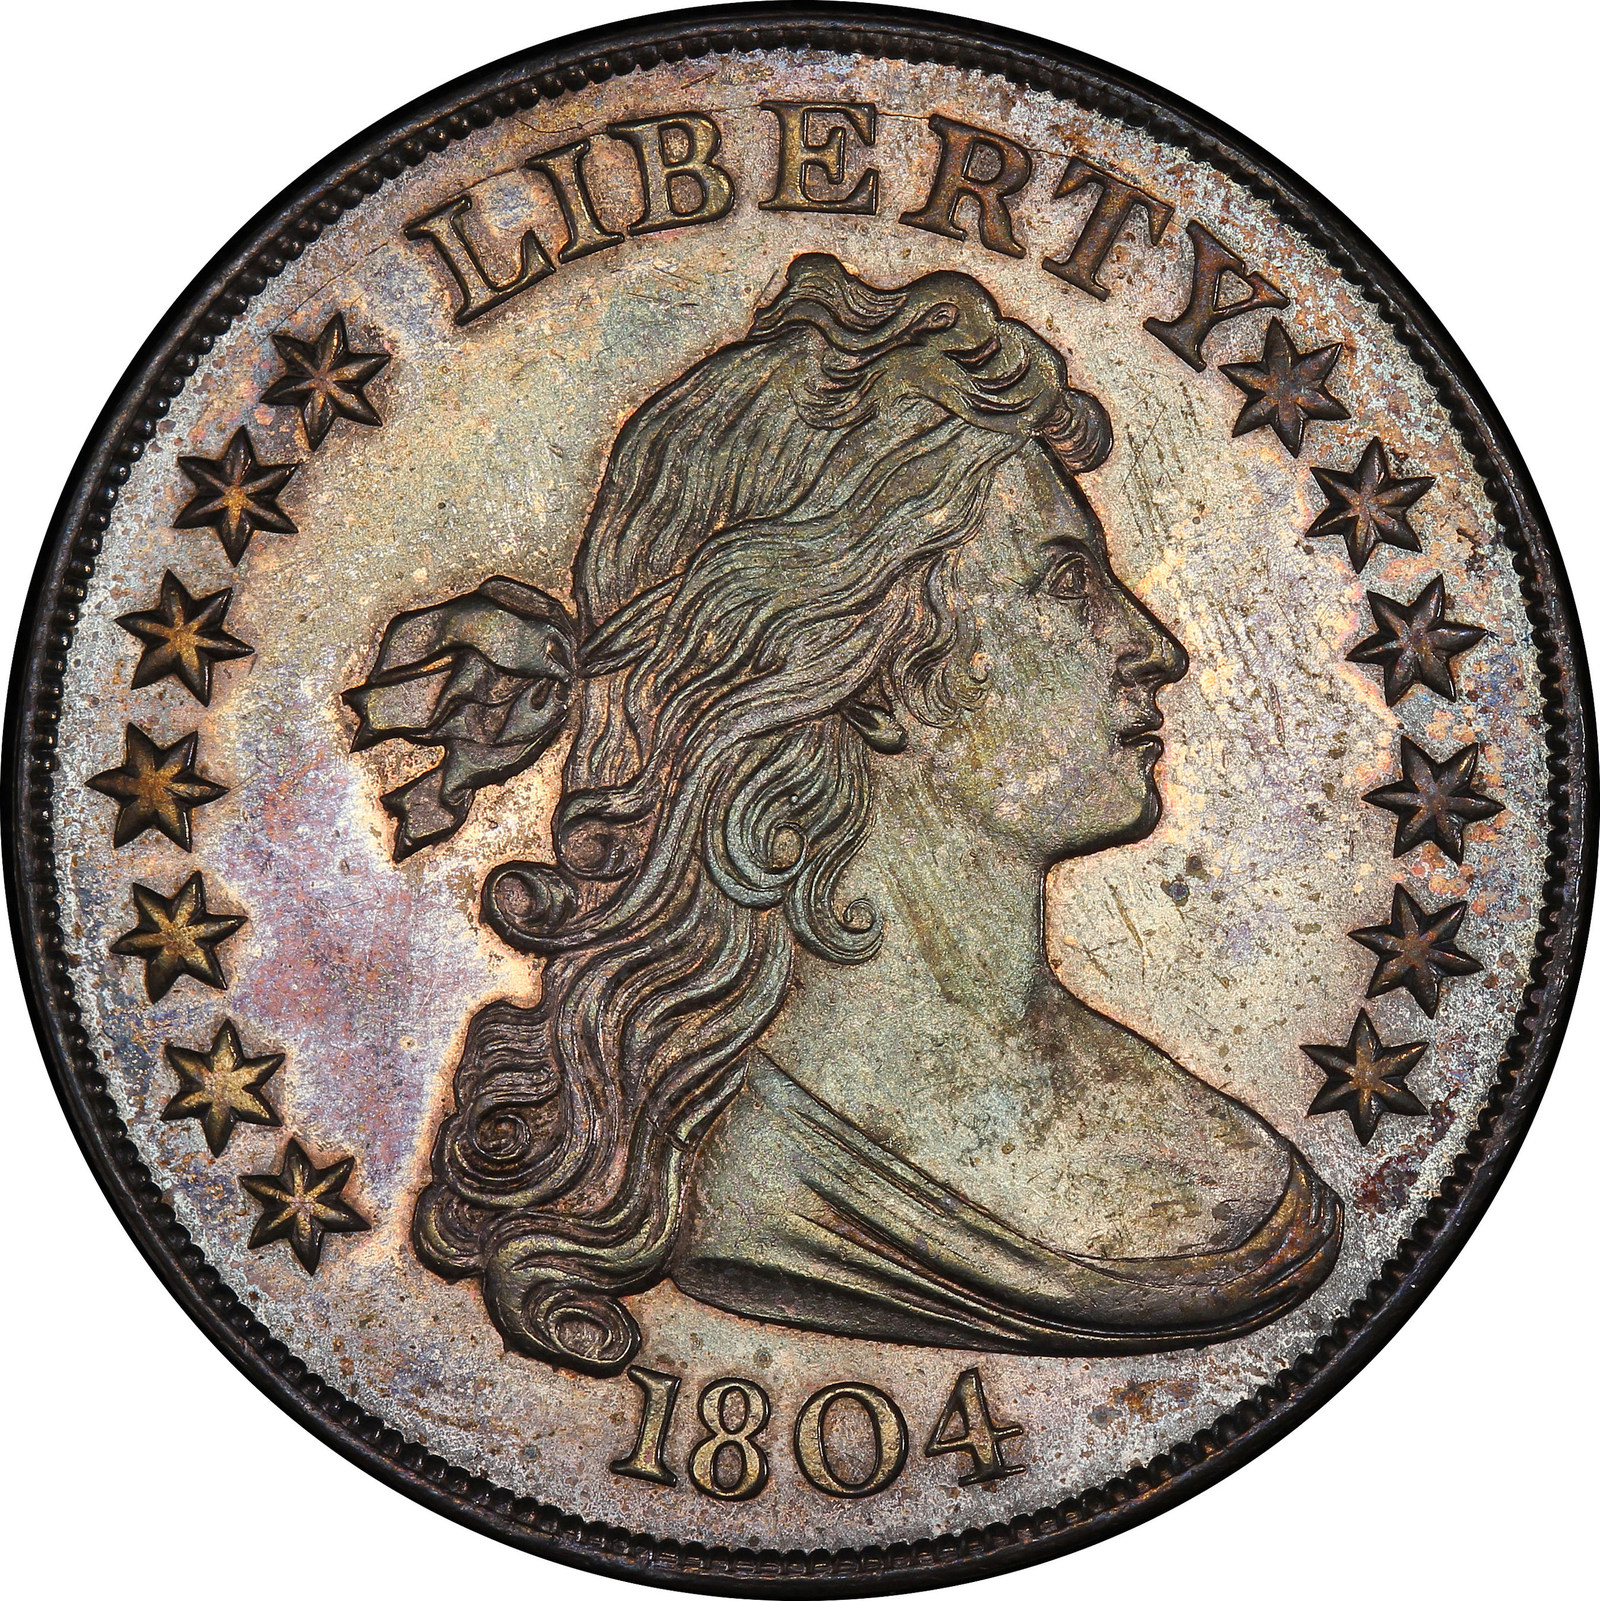 The most valuable U.S. rare coin purchased at auction in 2017 was this 1804-dated silver dollar sold by Stack's Bowers Galleries for $3,290,000. (Image courtesy of Stack's Bowers Galleries.)